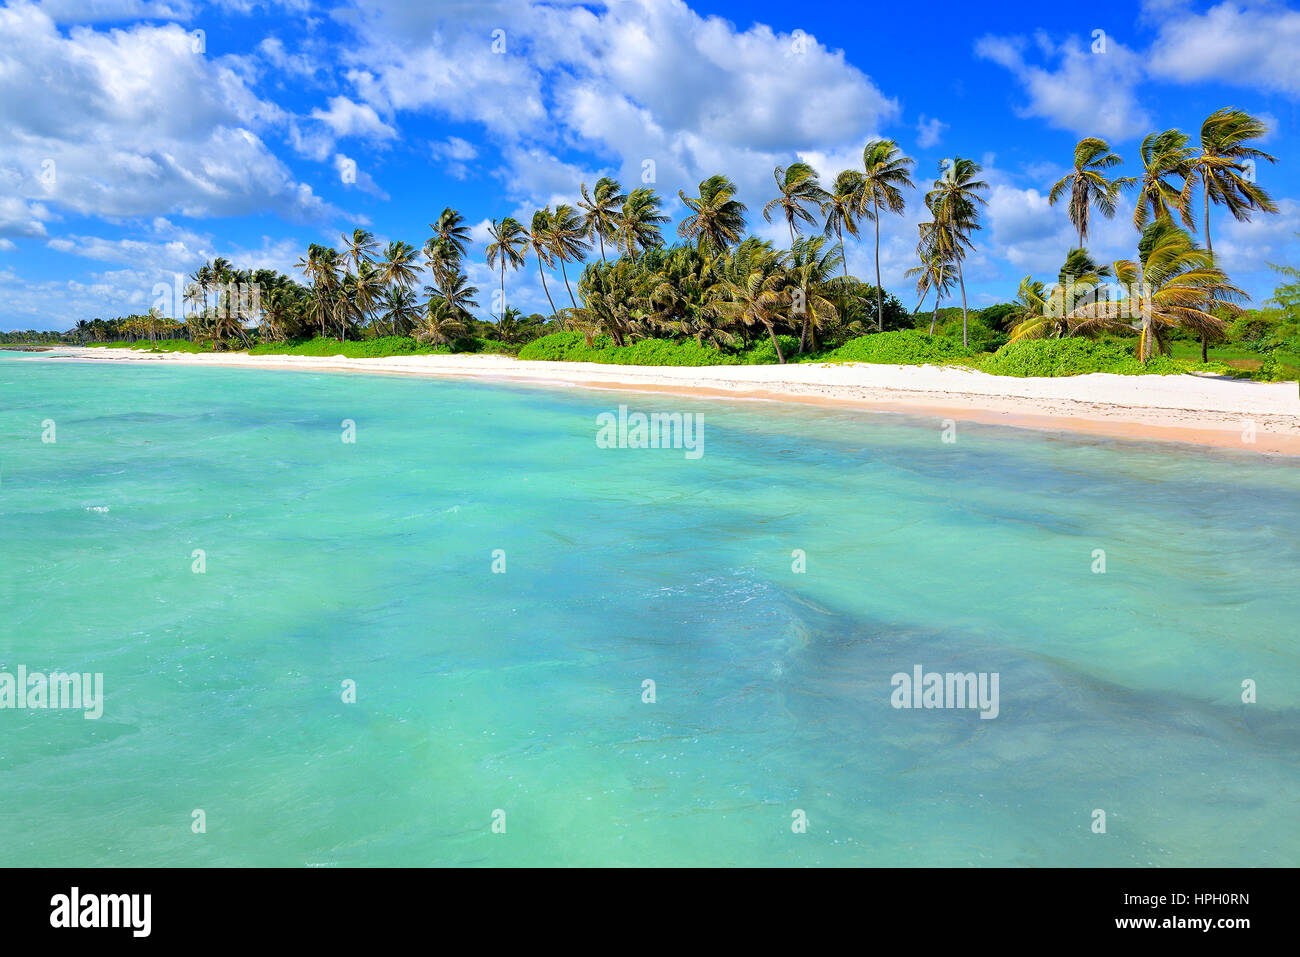 Tropical white sandy beach with palm trees. Punta Cana, Dominican Republic - Stock Image